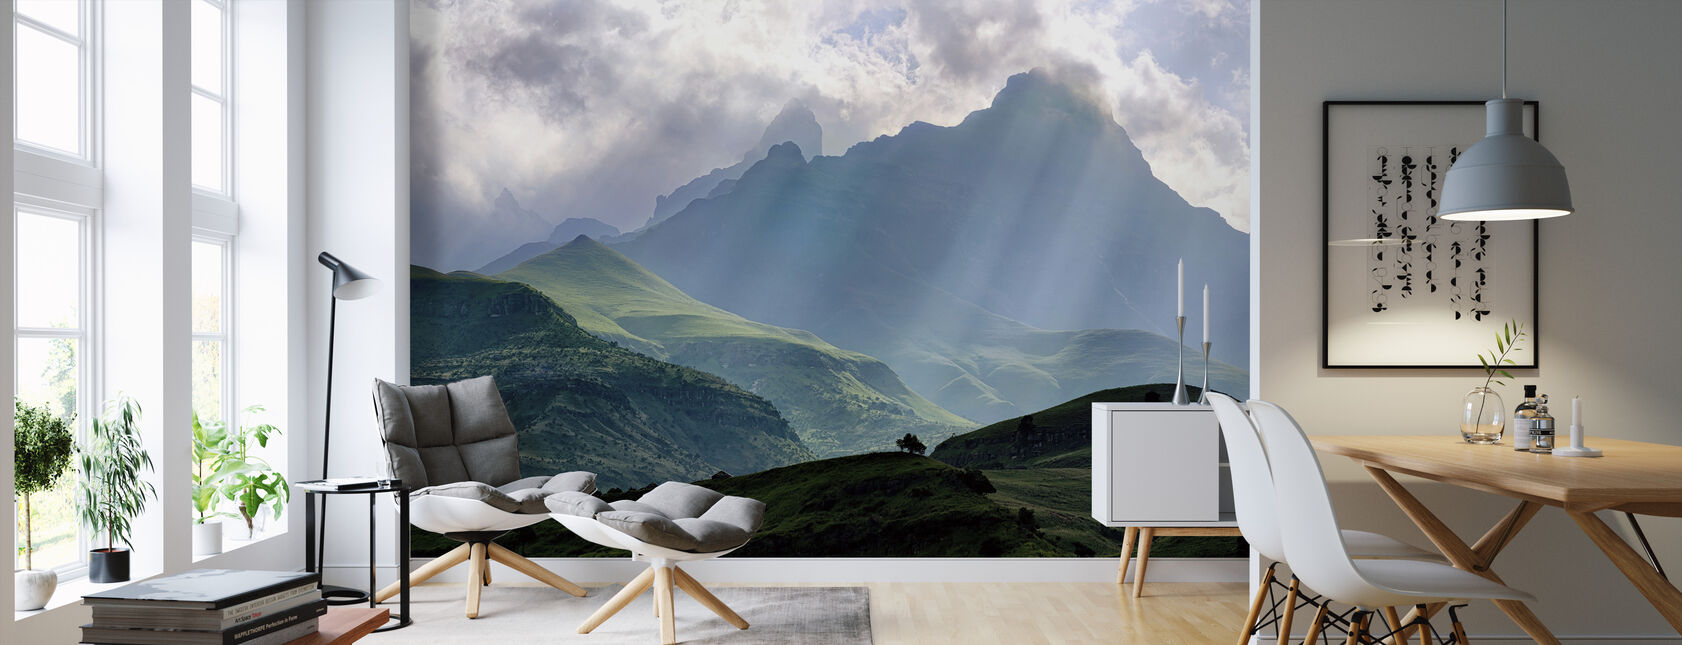 Mnweni Rays - Wallpaper - Living Room